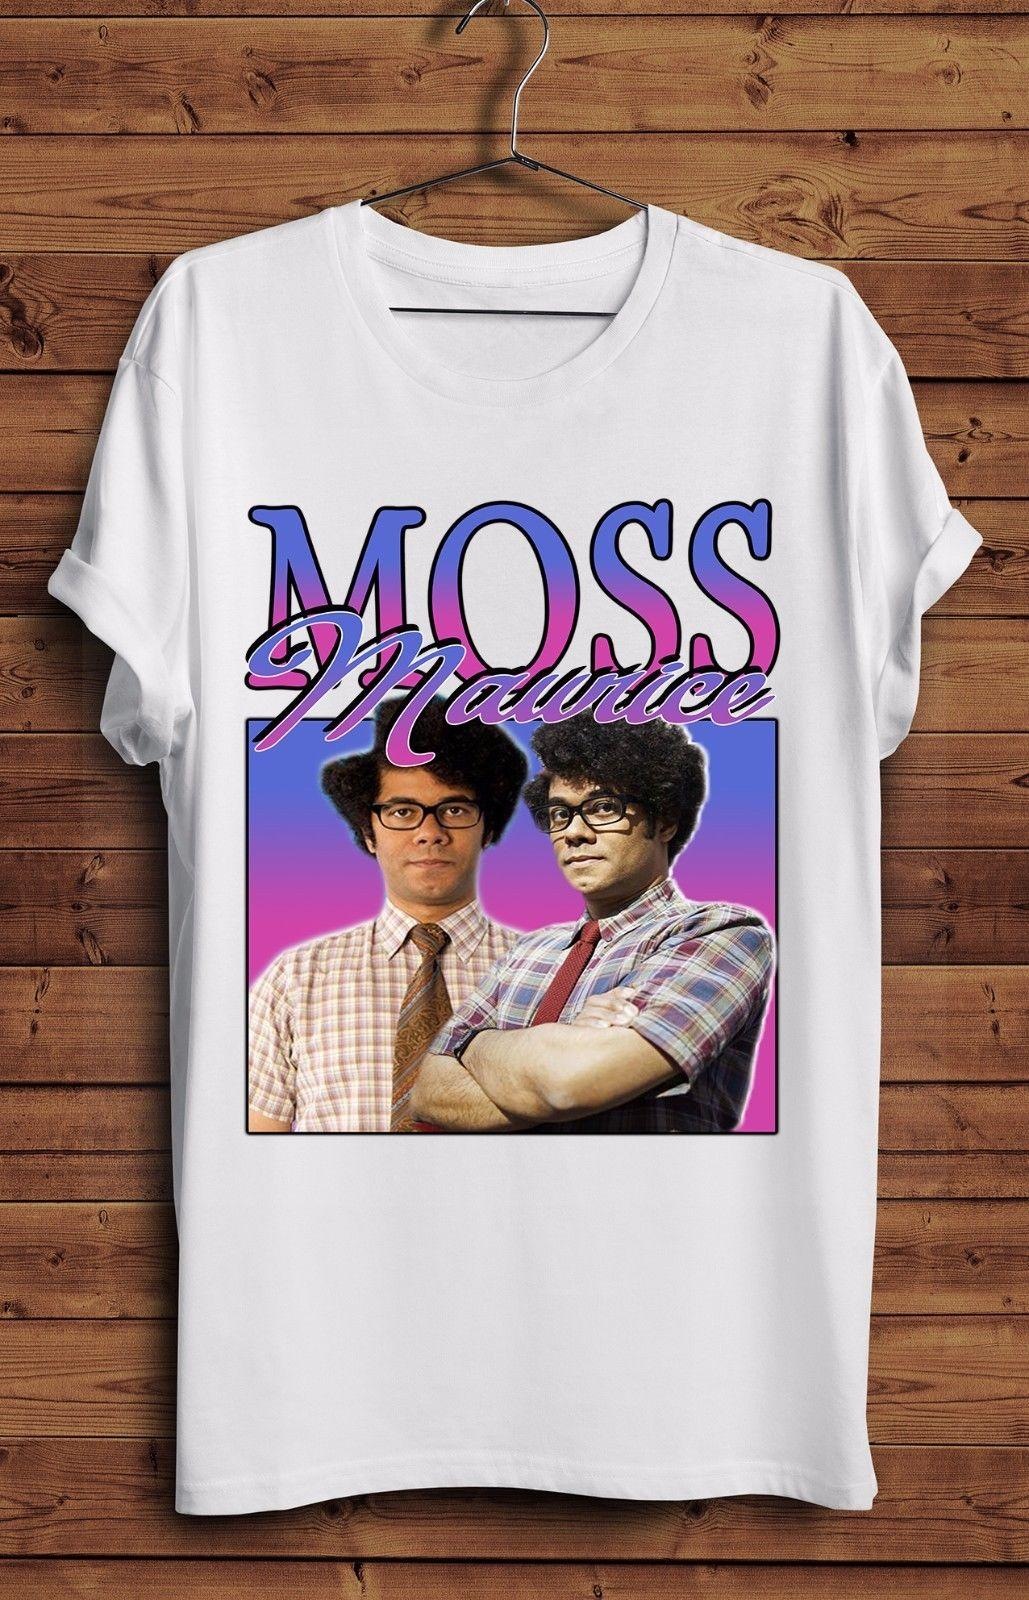 moss it crowd